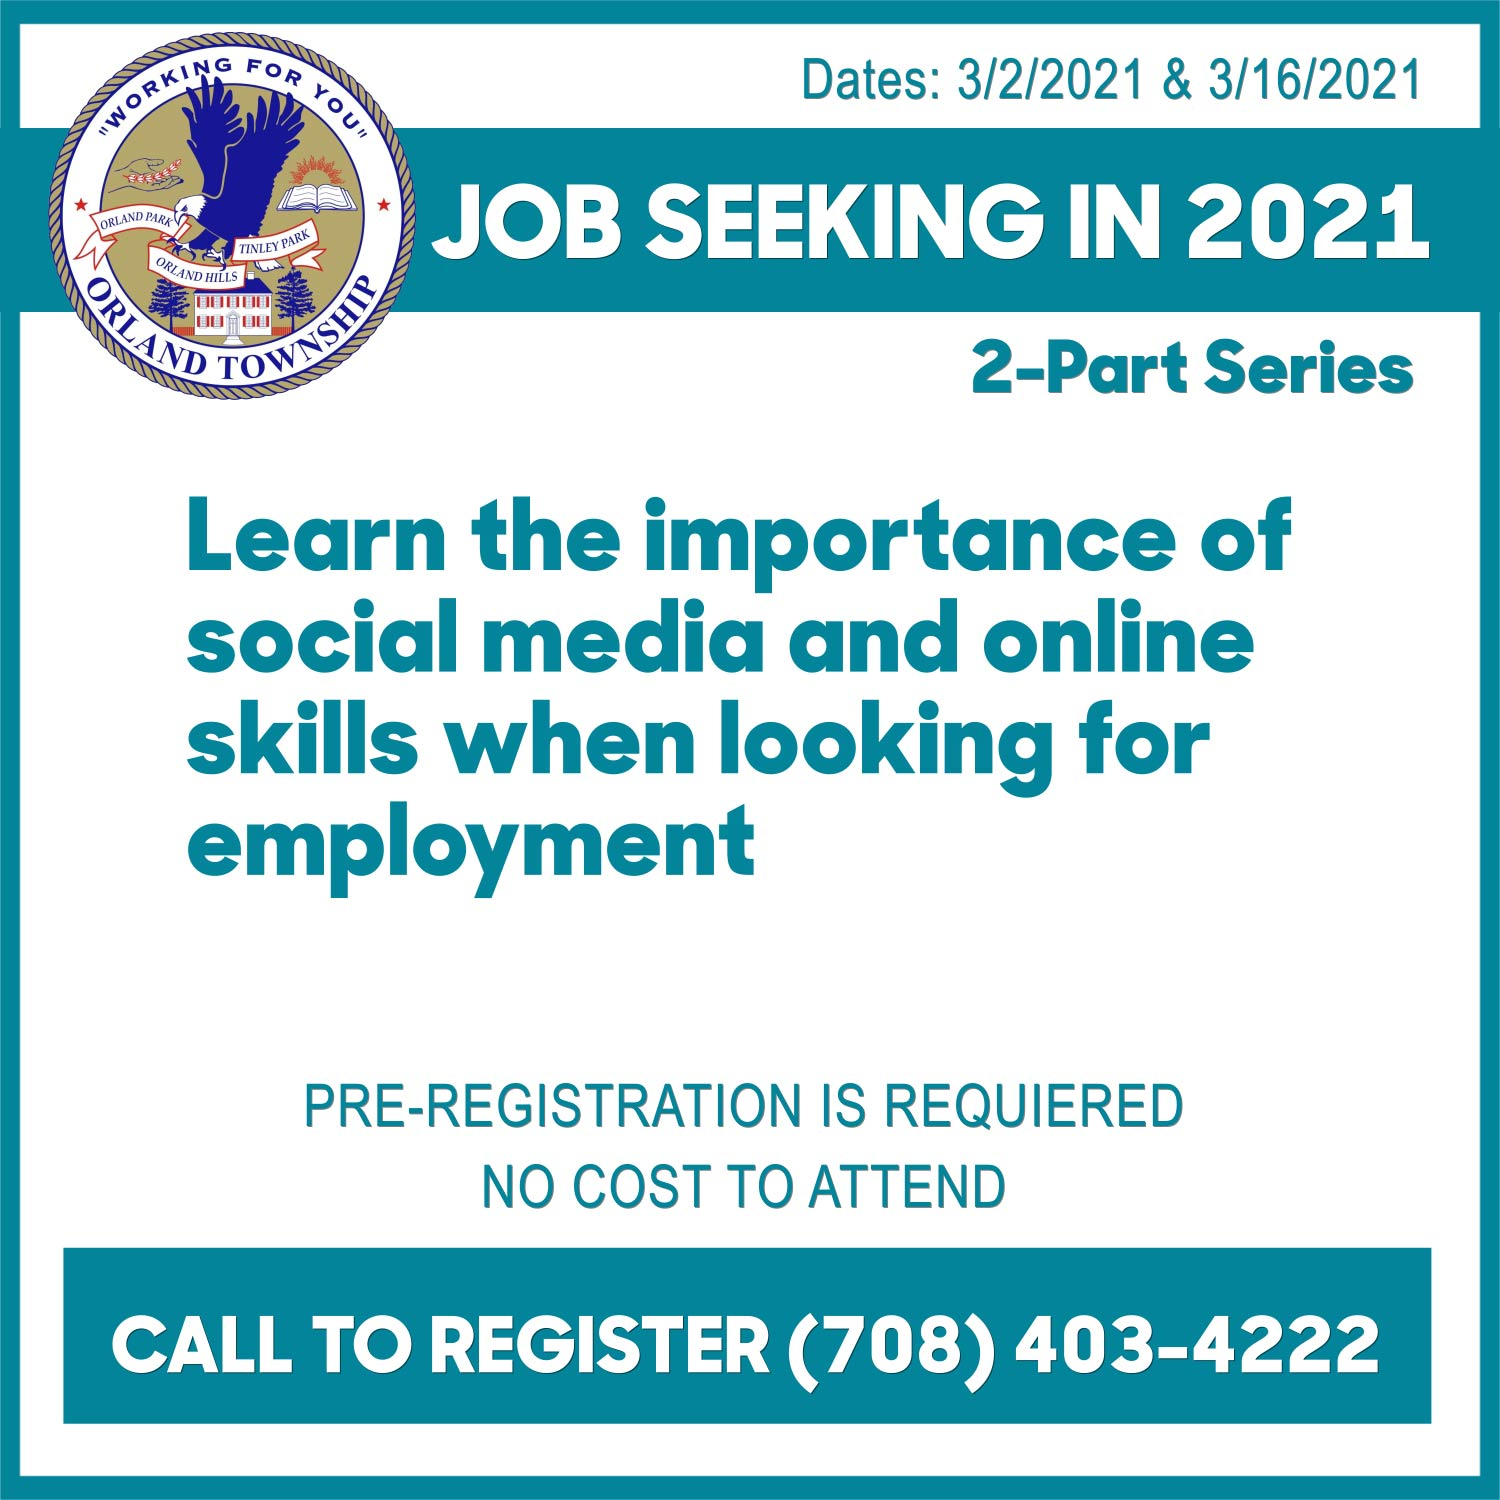 Orland Township Job Seeking Seminar square